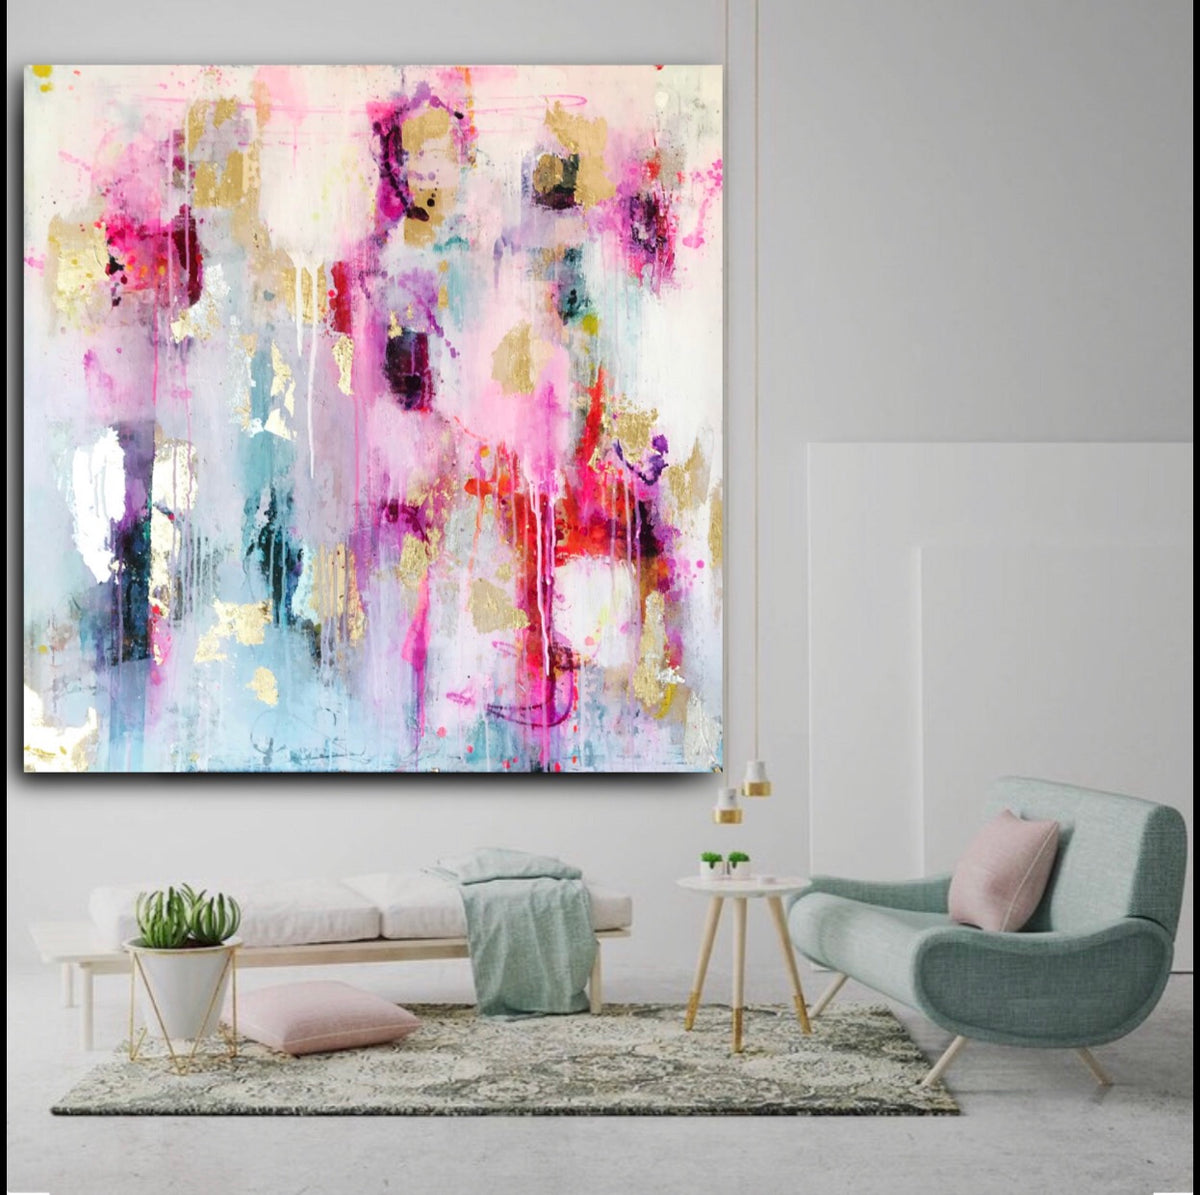 Dreaming With You | Original Artwork on Canvas